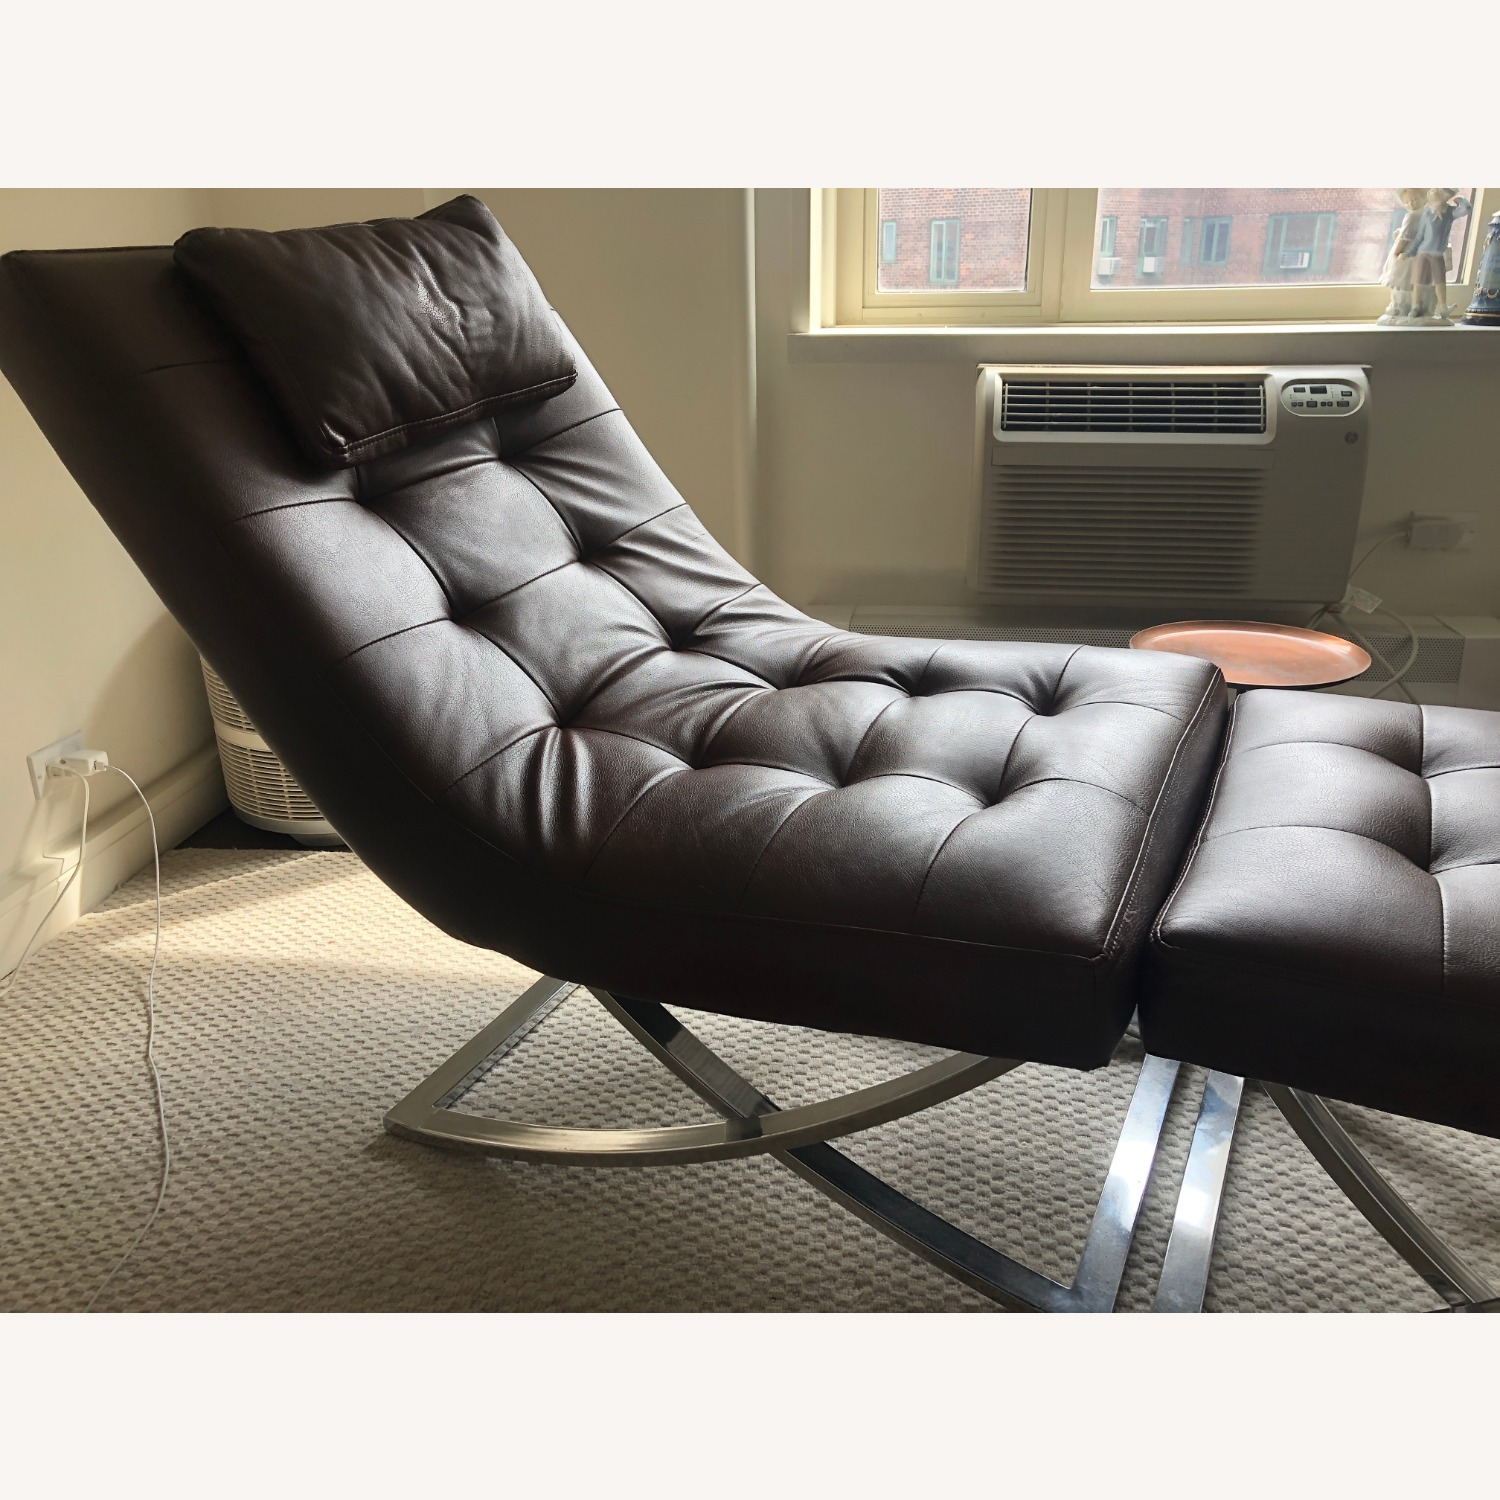 Raymour & Flanigan Leather Chaise and Ottoman - image-3